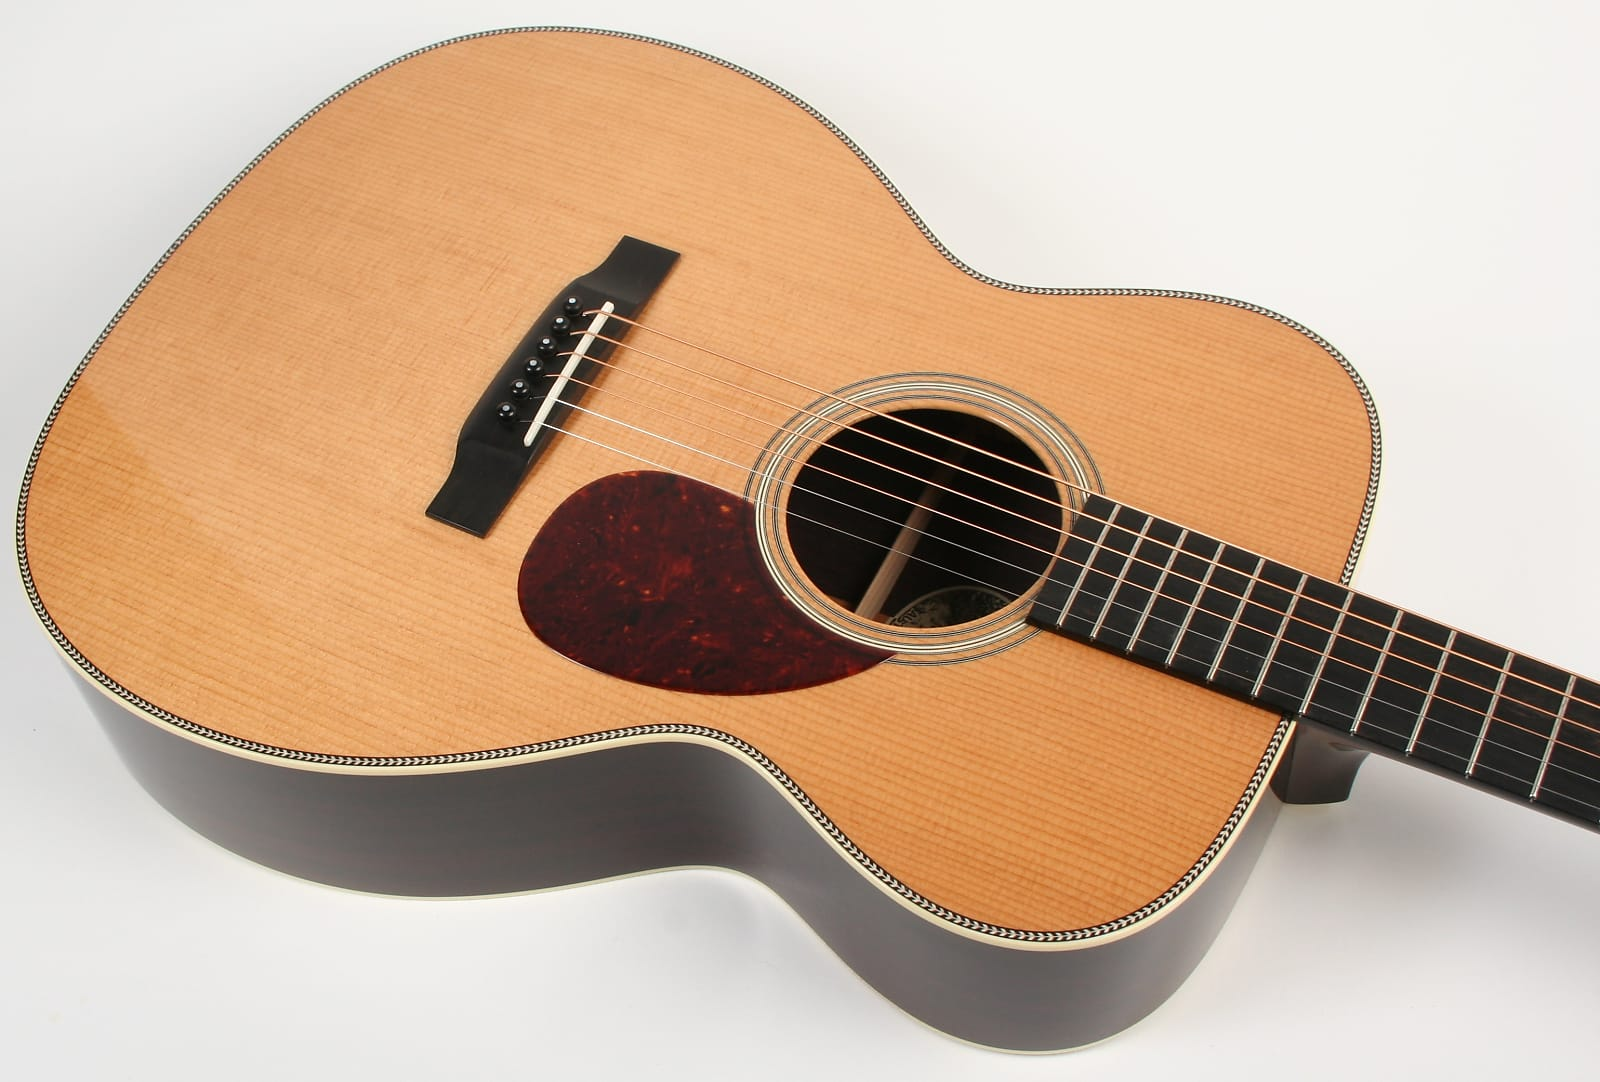 Collings Om2h Orchestra Model Acoustic Guitar 1 11 16 Quot Nut